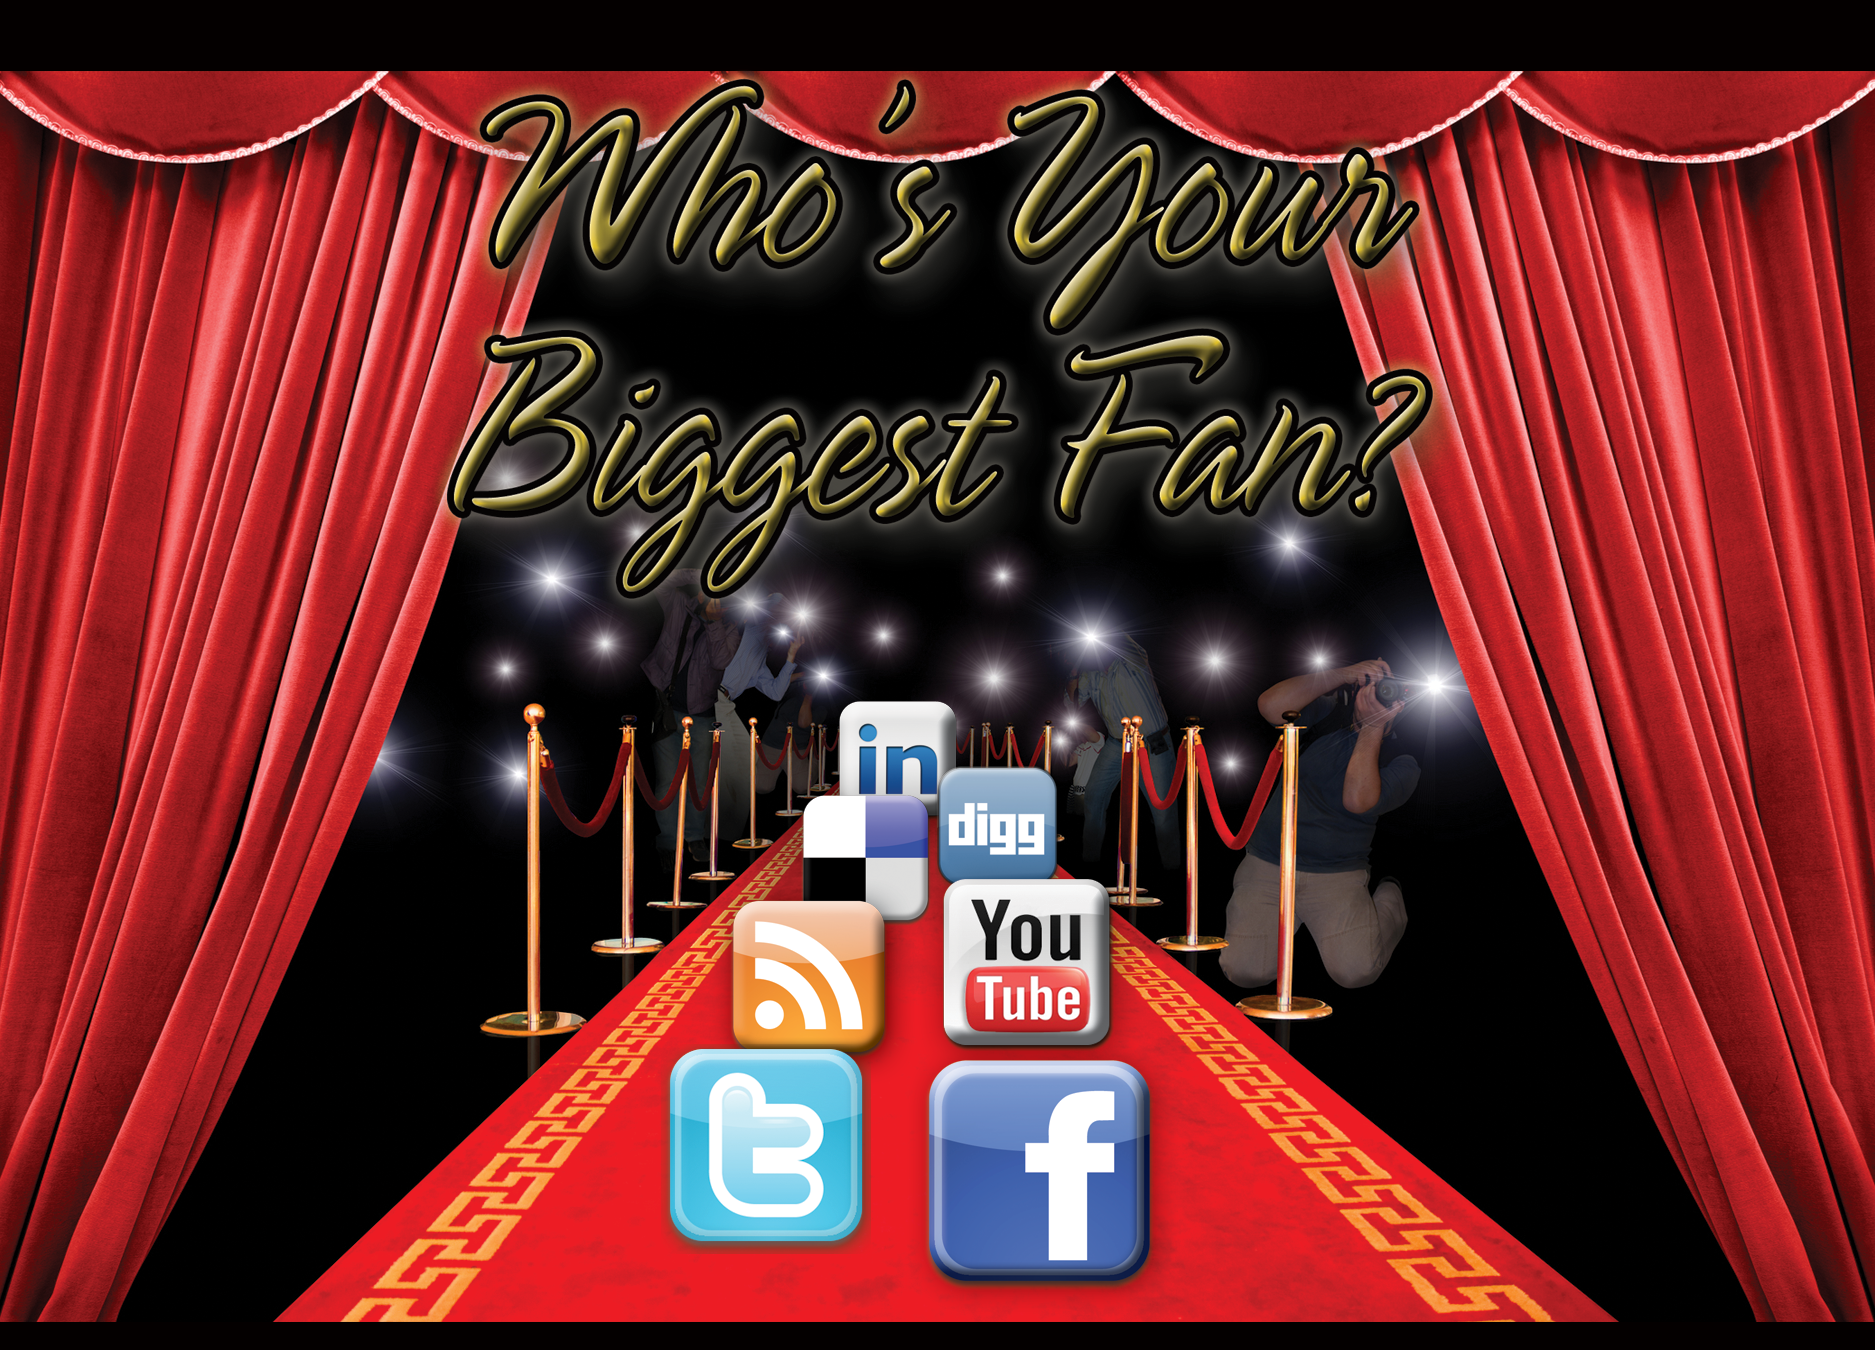 Who's_Your_Bigest_Fan